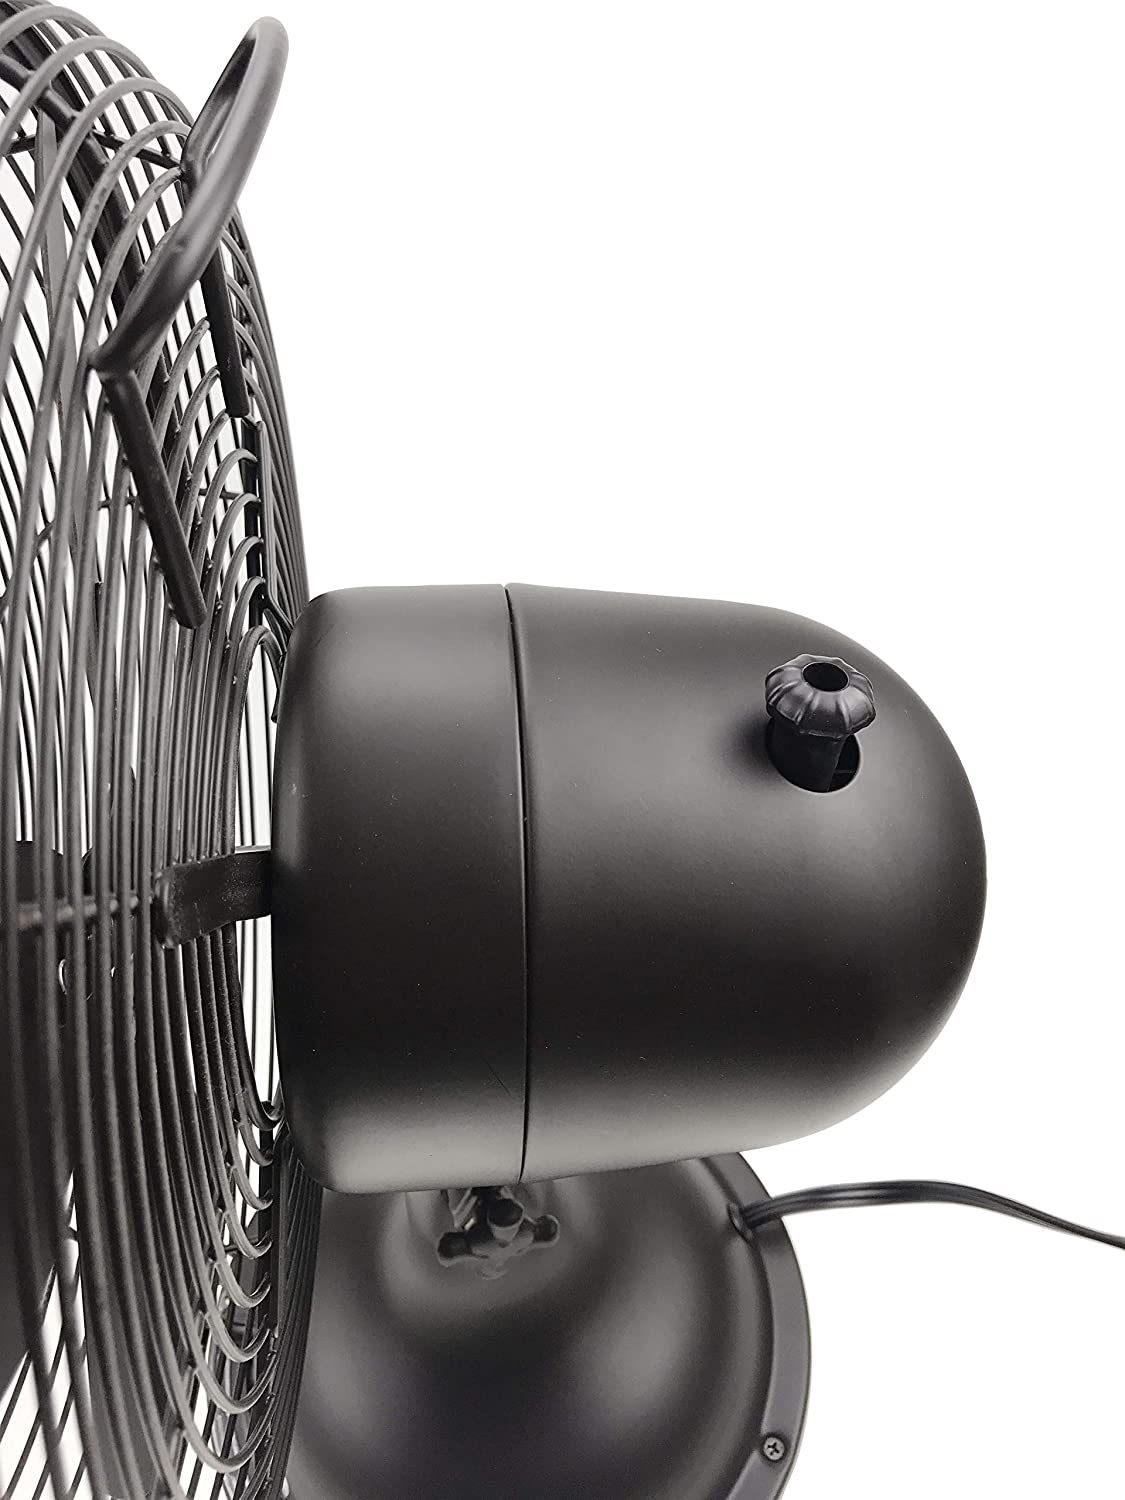 HUNTER 12 Retro Table Fan with All-Metal Construction Oil-Rubbed Bronze